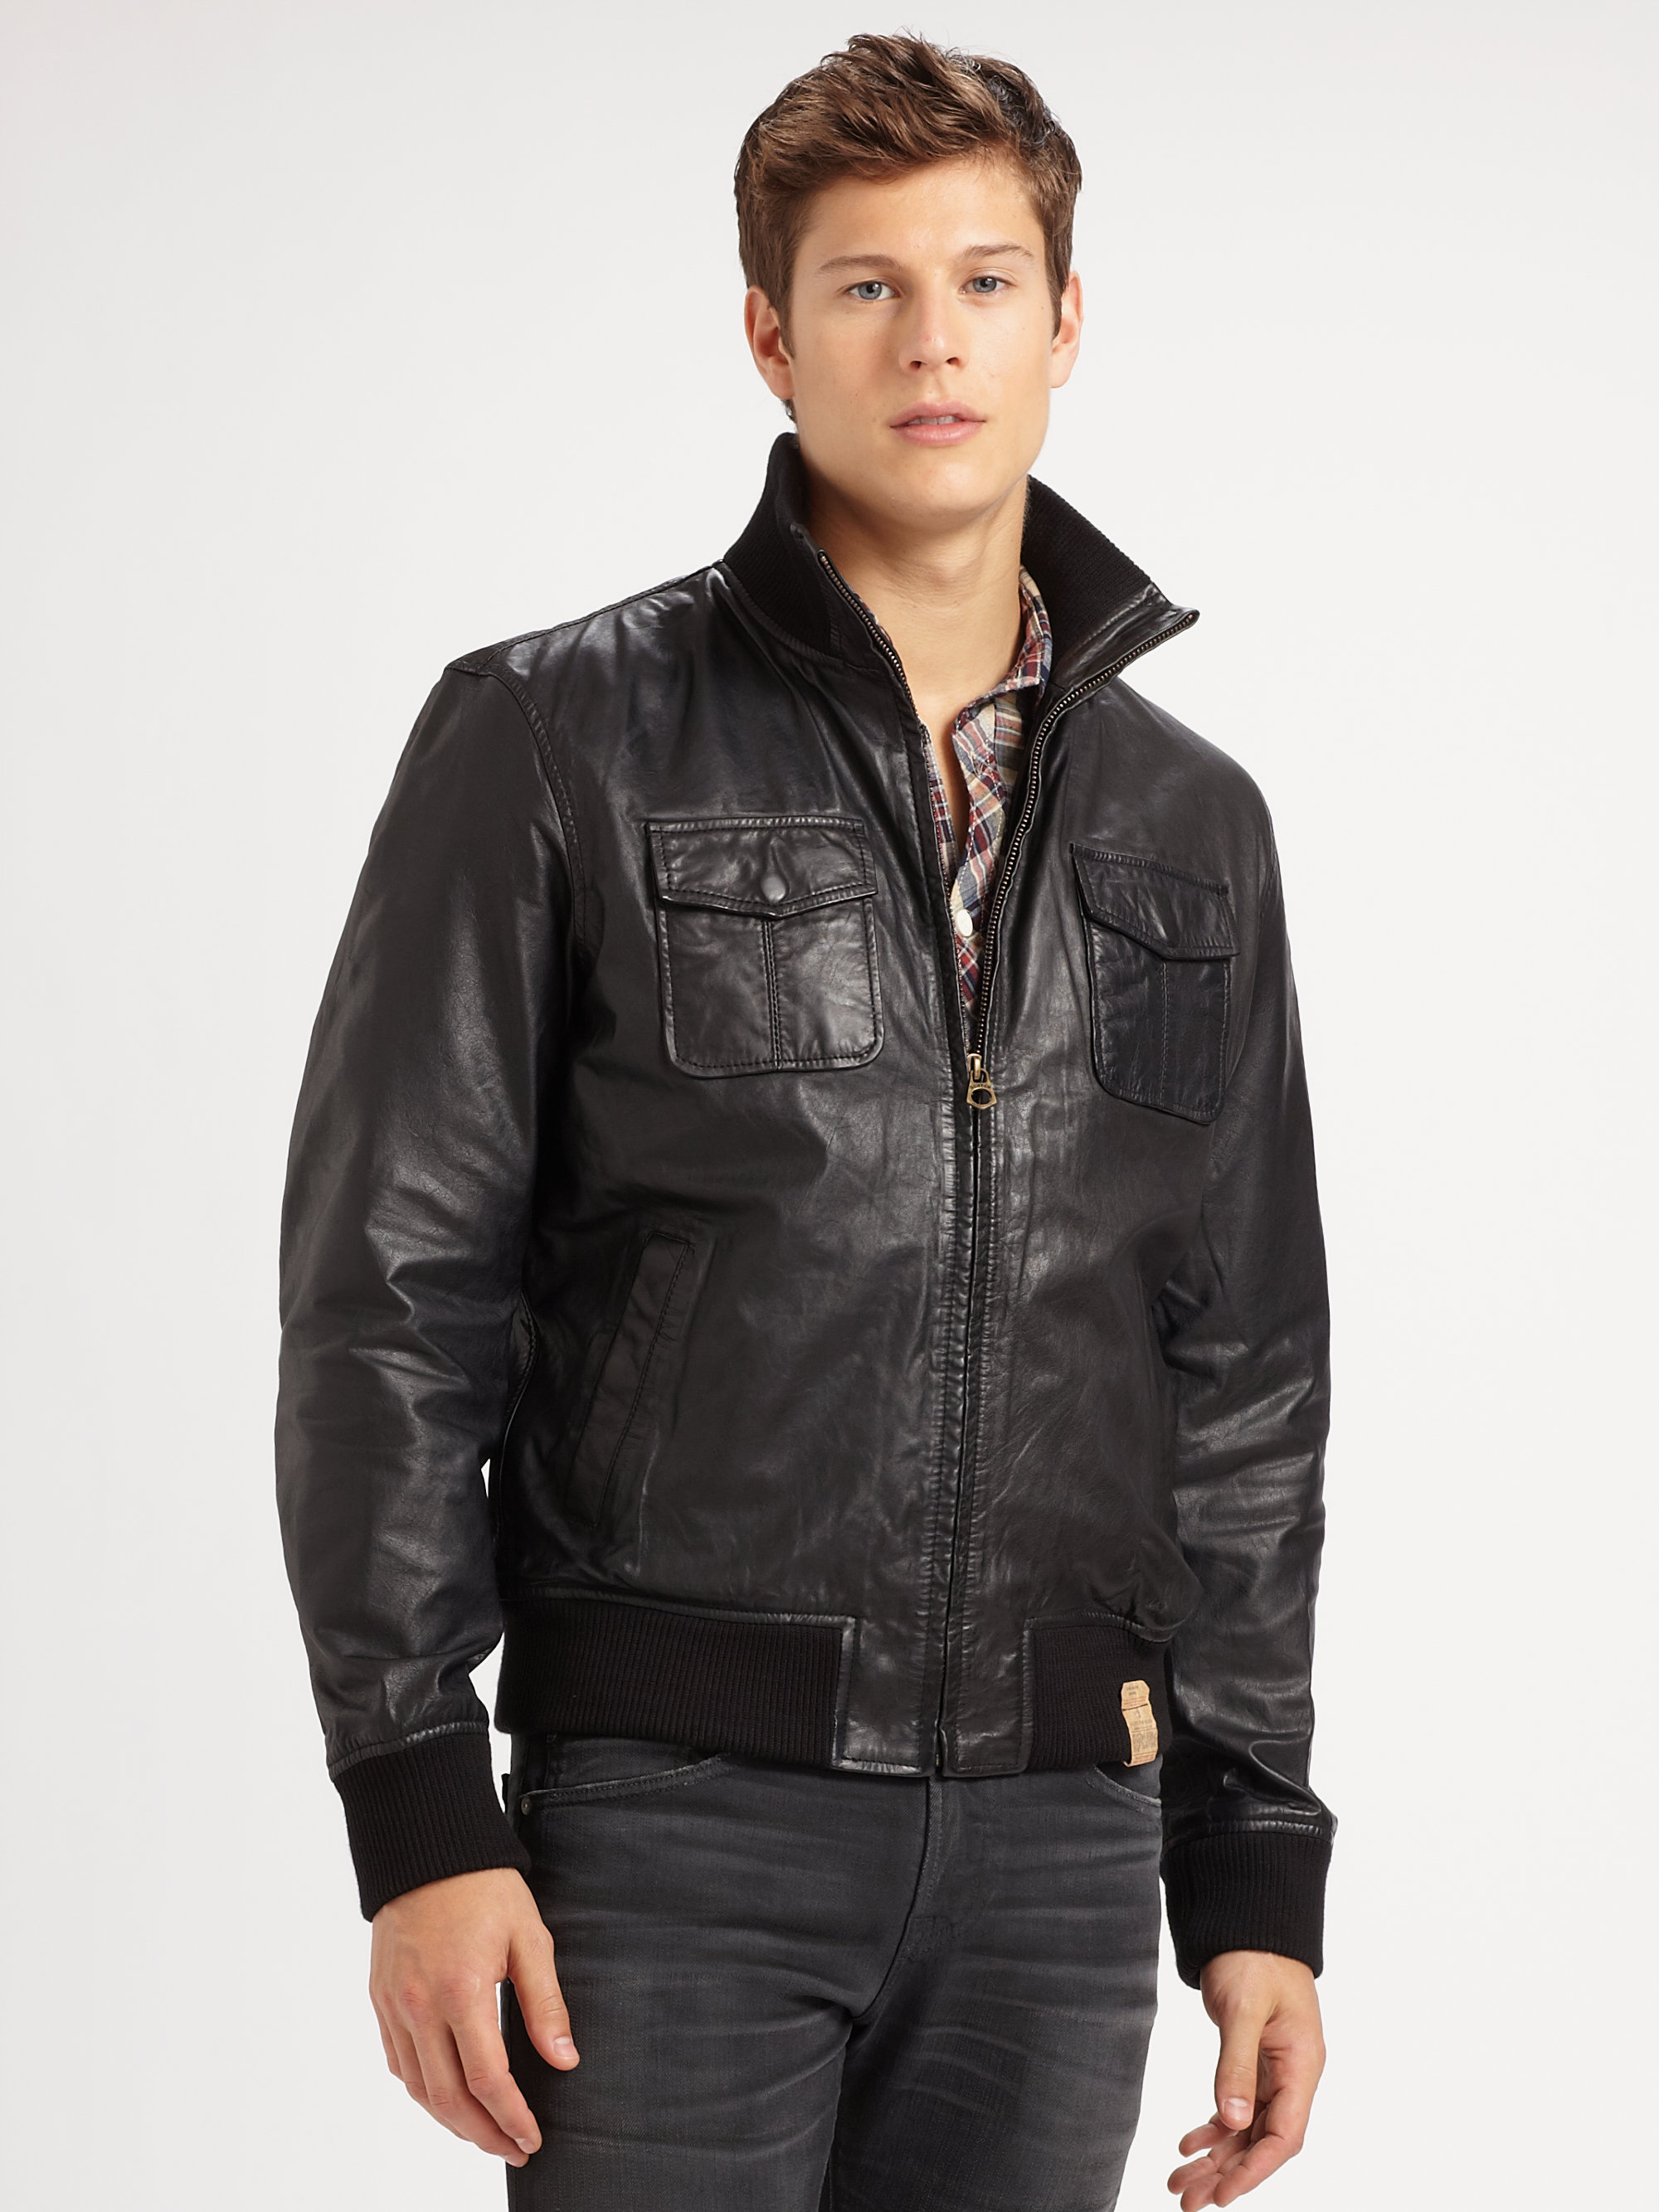 Scotch & soda Leather Bomber Jacket in Black for Men | Lyst